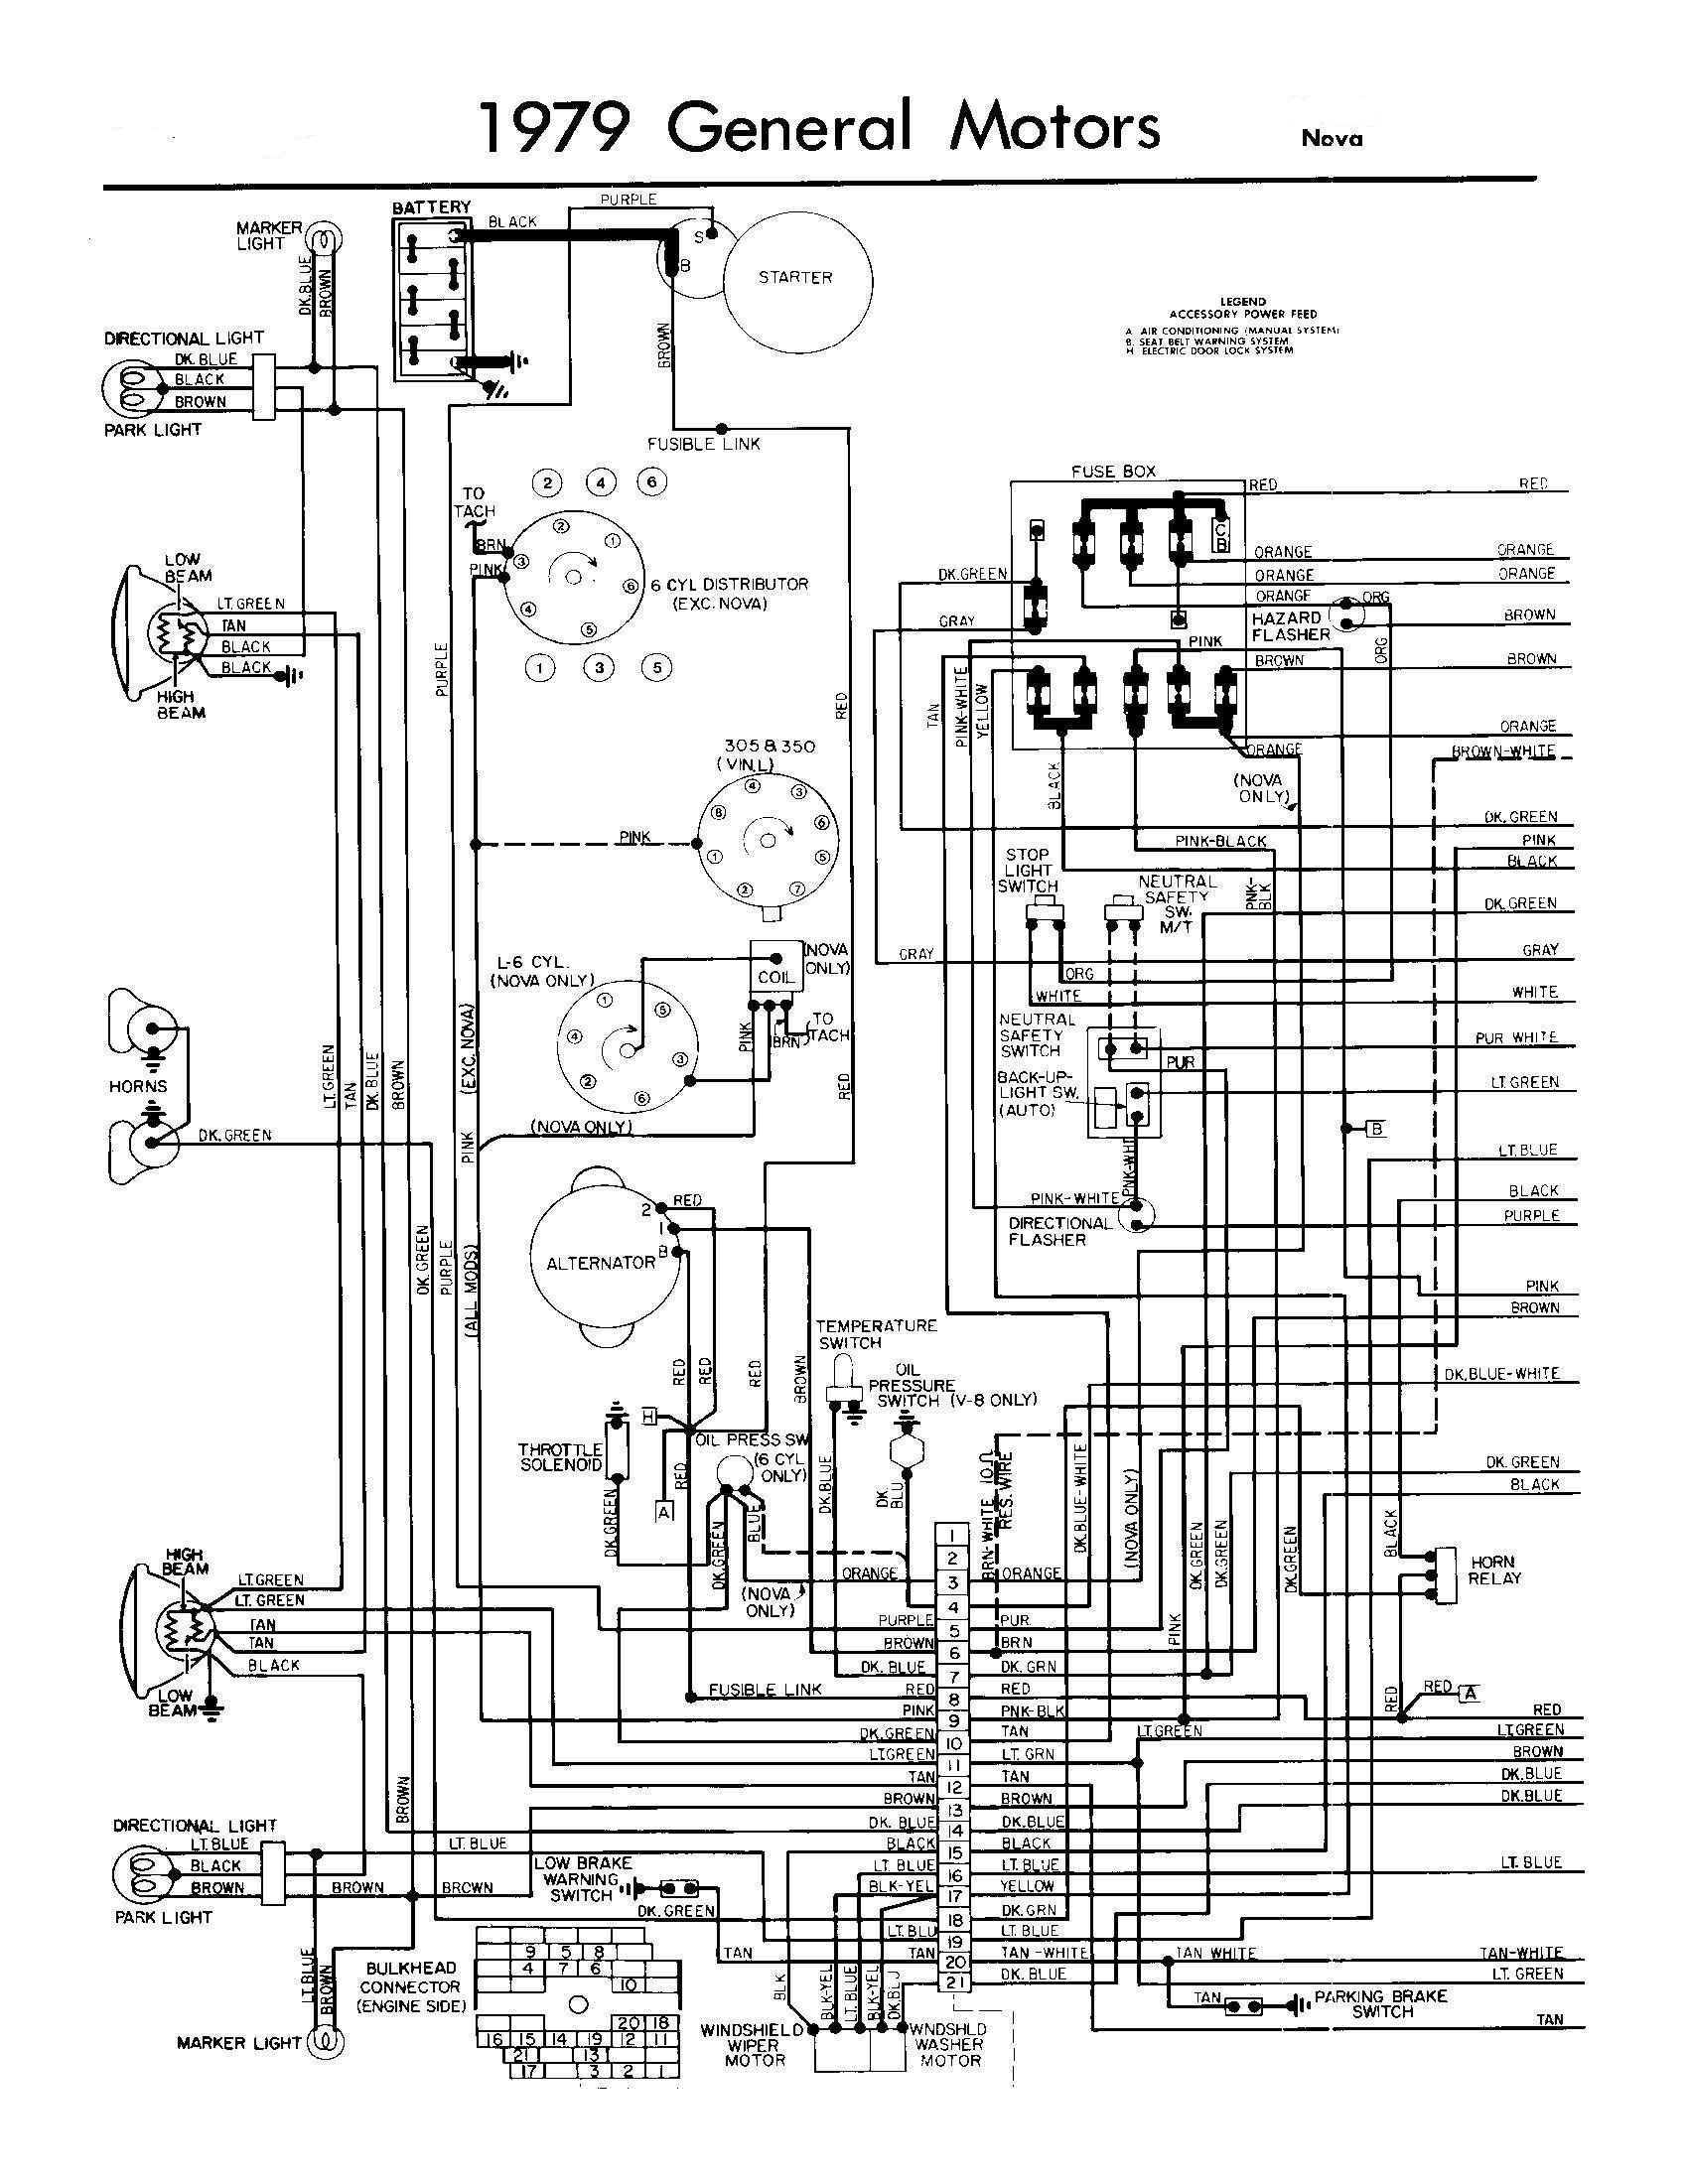 Proficad 65 By Software For Electrical Diagrams Schematics 92 Chevy Pickup Wiring Diagram Get Free Image About Nascar Race Car Download Schematic Rh Perfect Sense Co